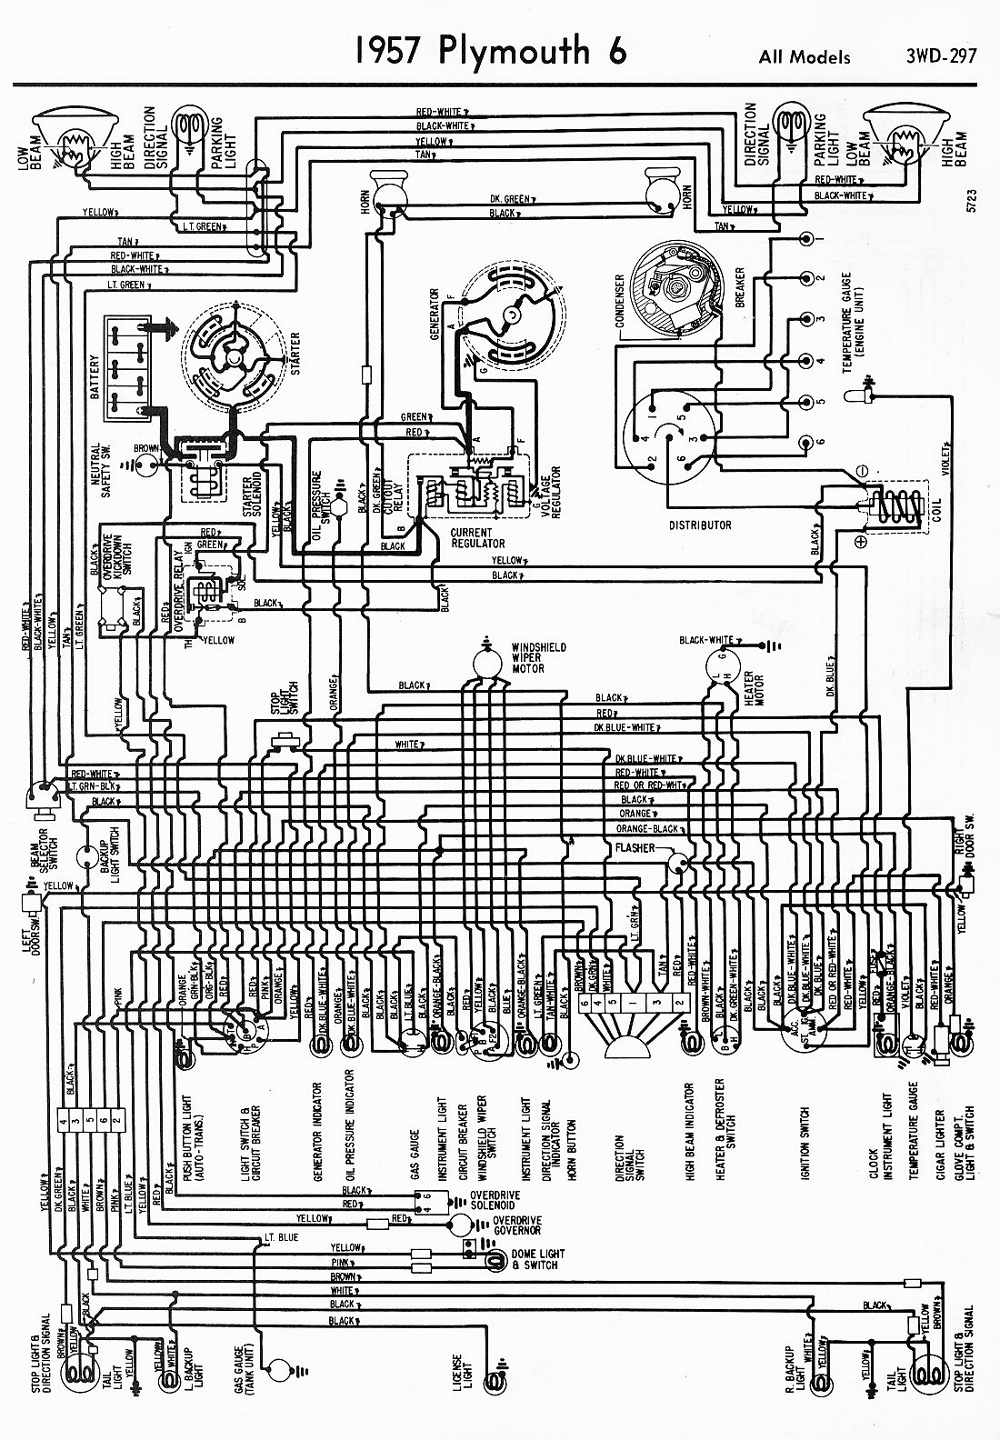 Proa  1957 Plymouth 6 All Models Wiring Diagram